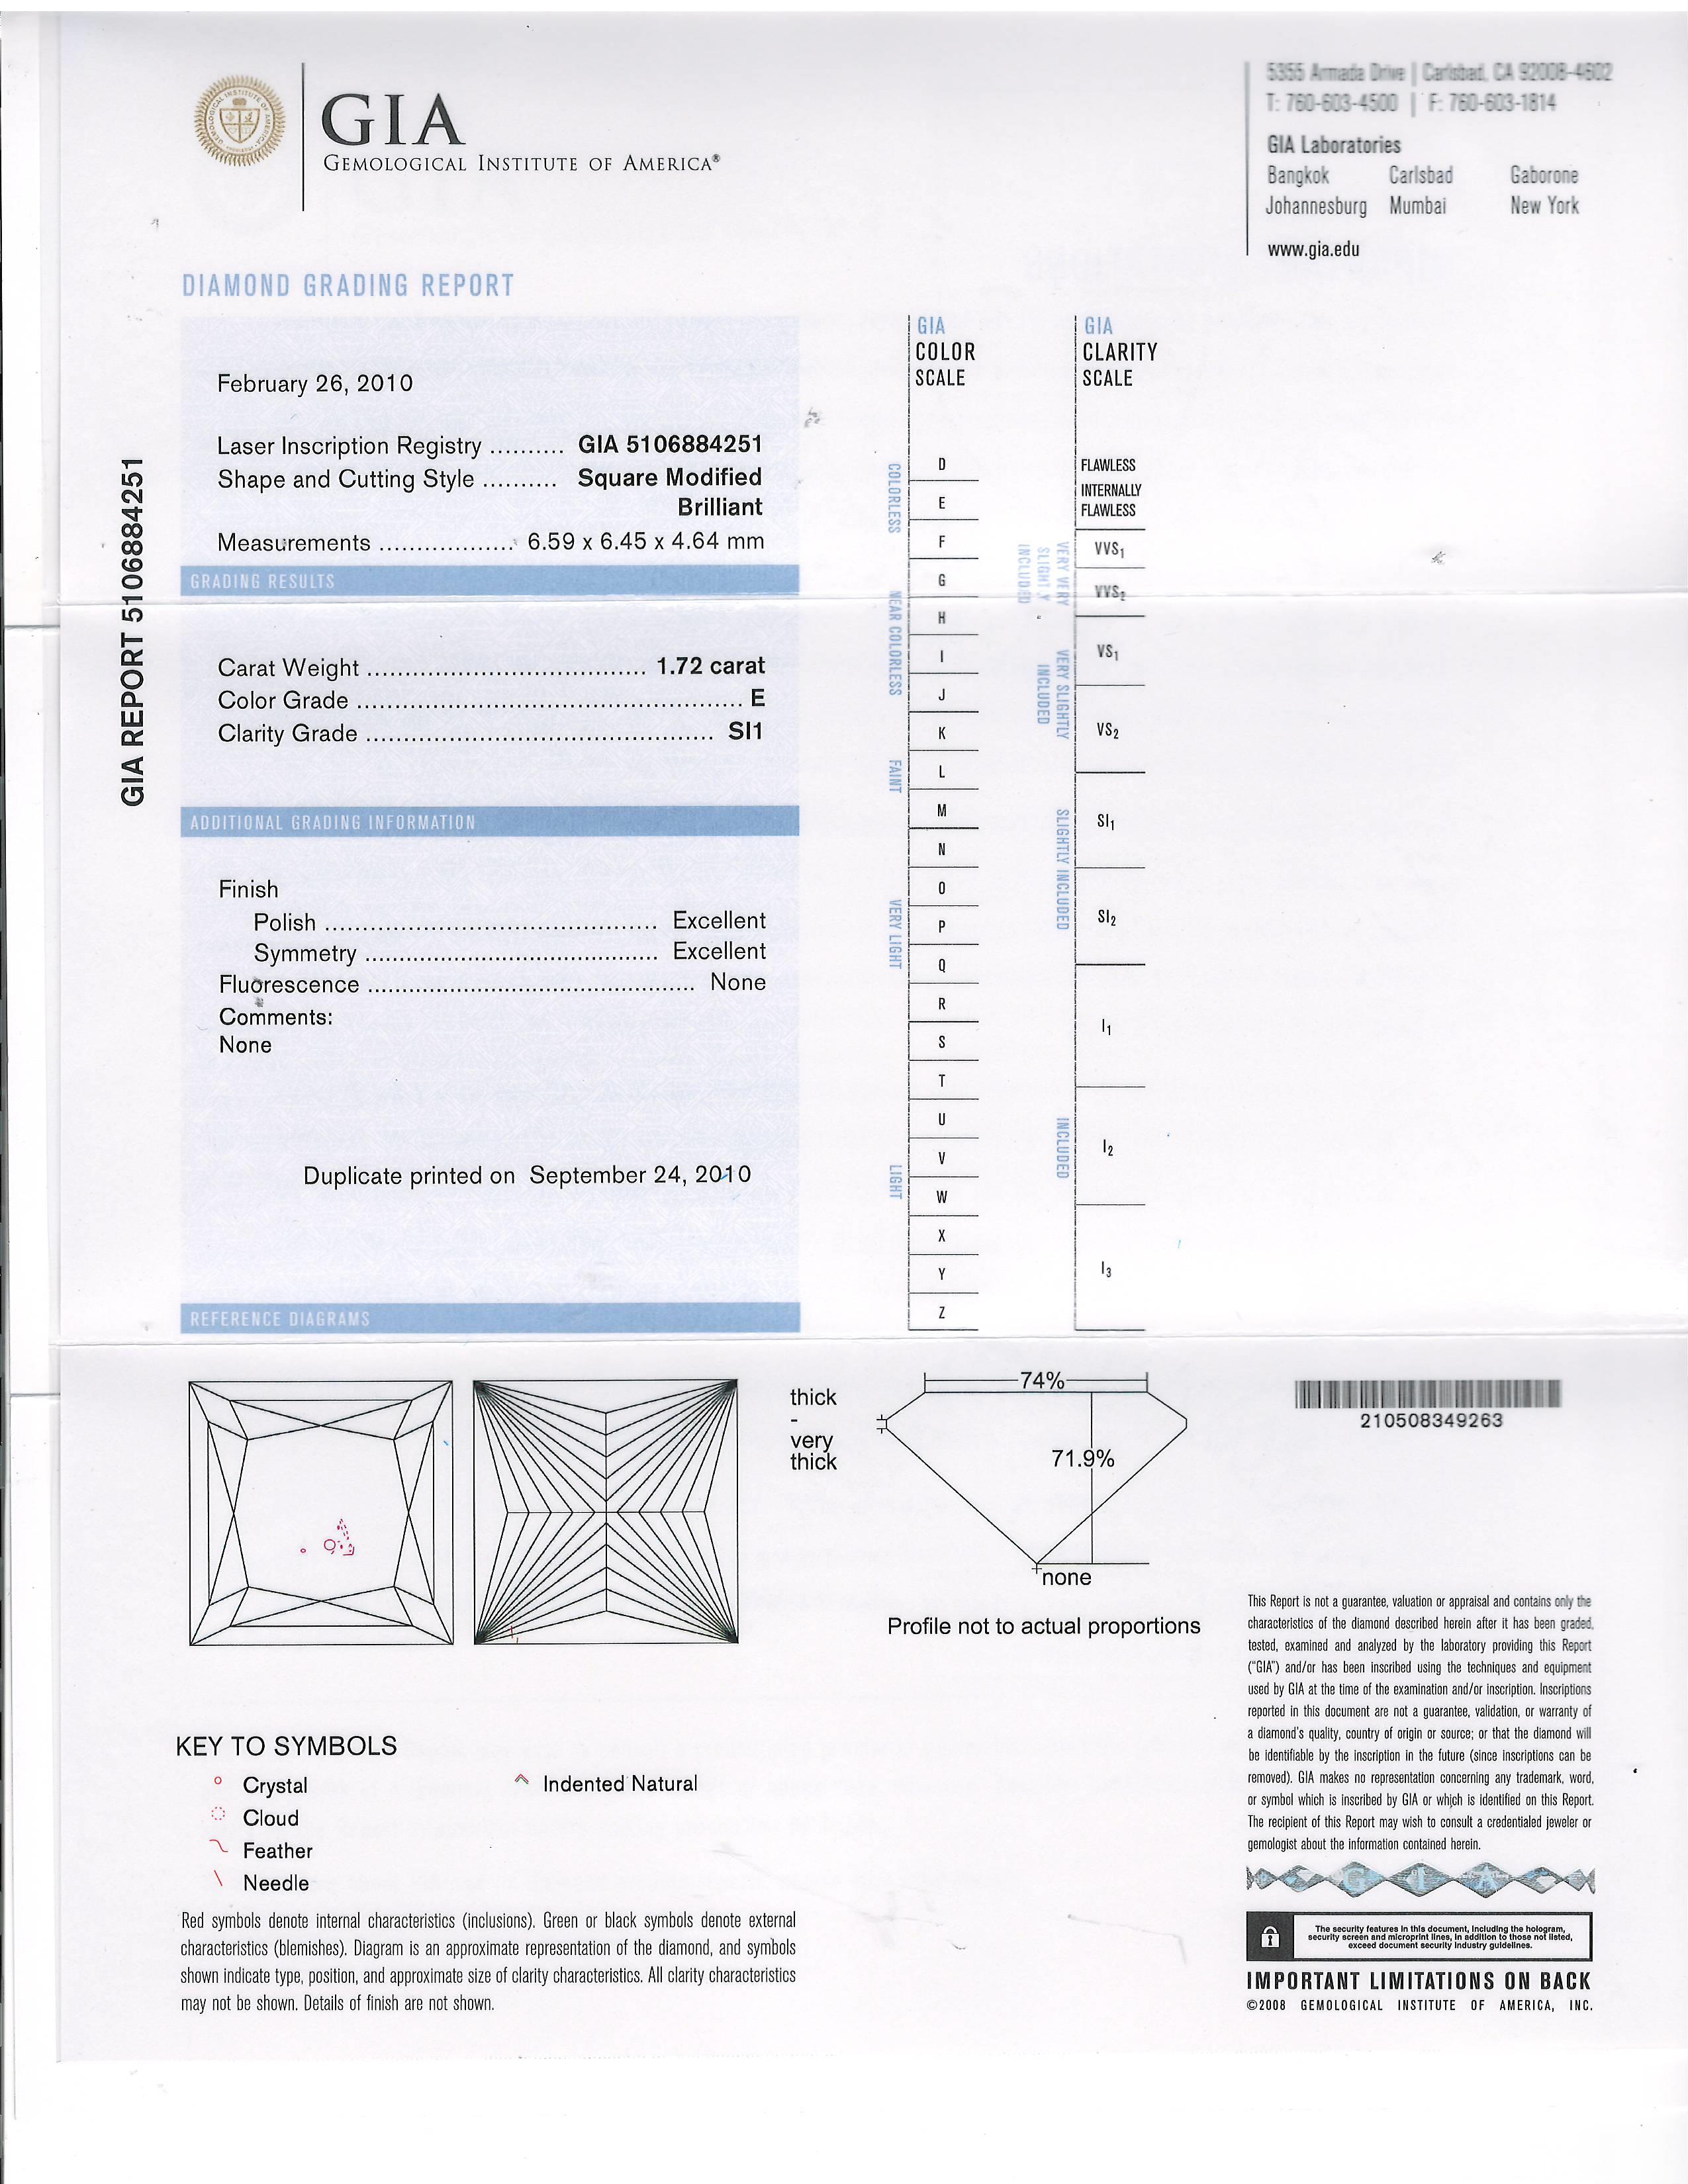 This is a 1.72 carat princess shape, E color, SI1 clarity natural diamond accompanied by a GIA grading report.